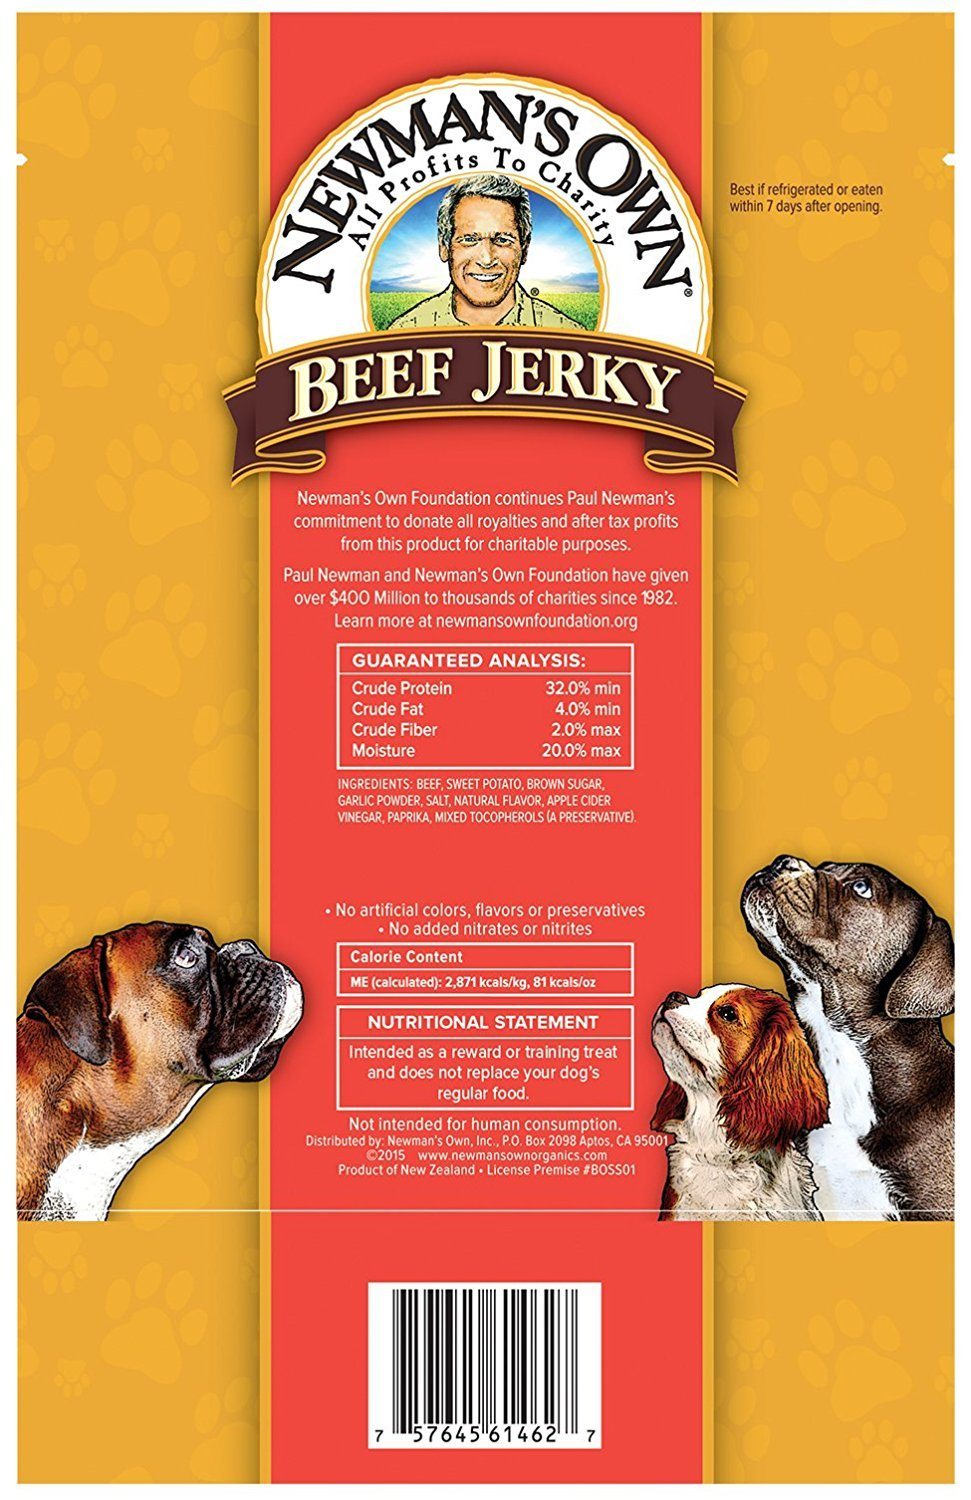 Newman's Own Grain Free Grass Fed Beef Jerky Dog Treats 2 Flavor Variety with Toy Bundle: (1) Original Recipe, and (1) Beef & Sweet Potato Recipe, 5 Oz. Ea. (2 Bags Total) by Newman's Own (Image #4)